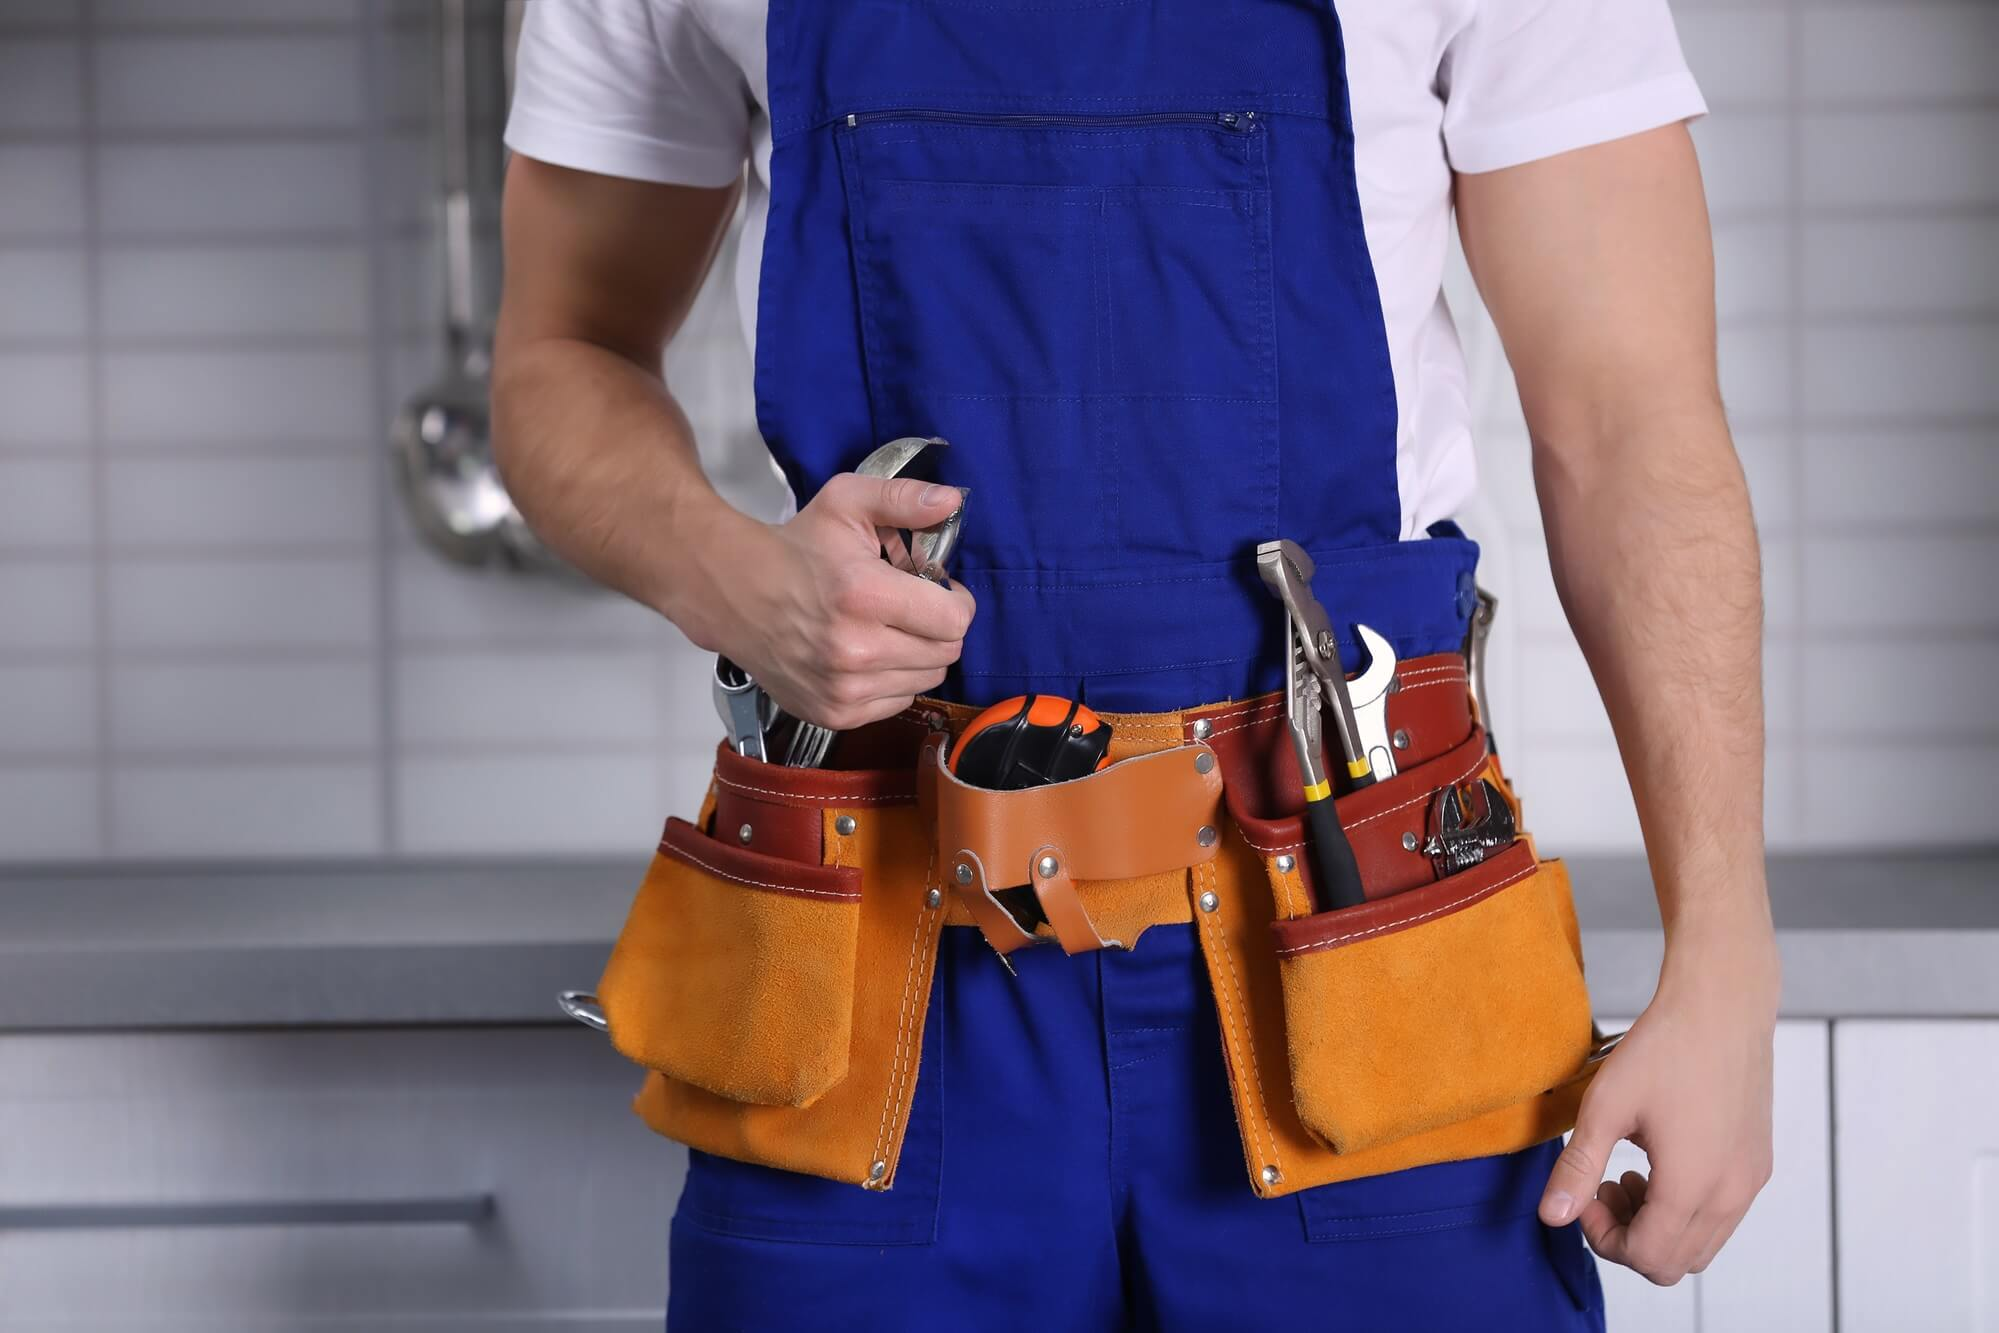 A handyman carrying tools to install and repair water heaters